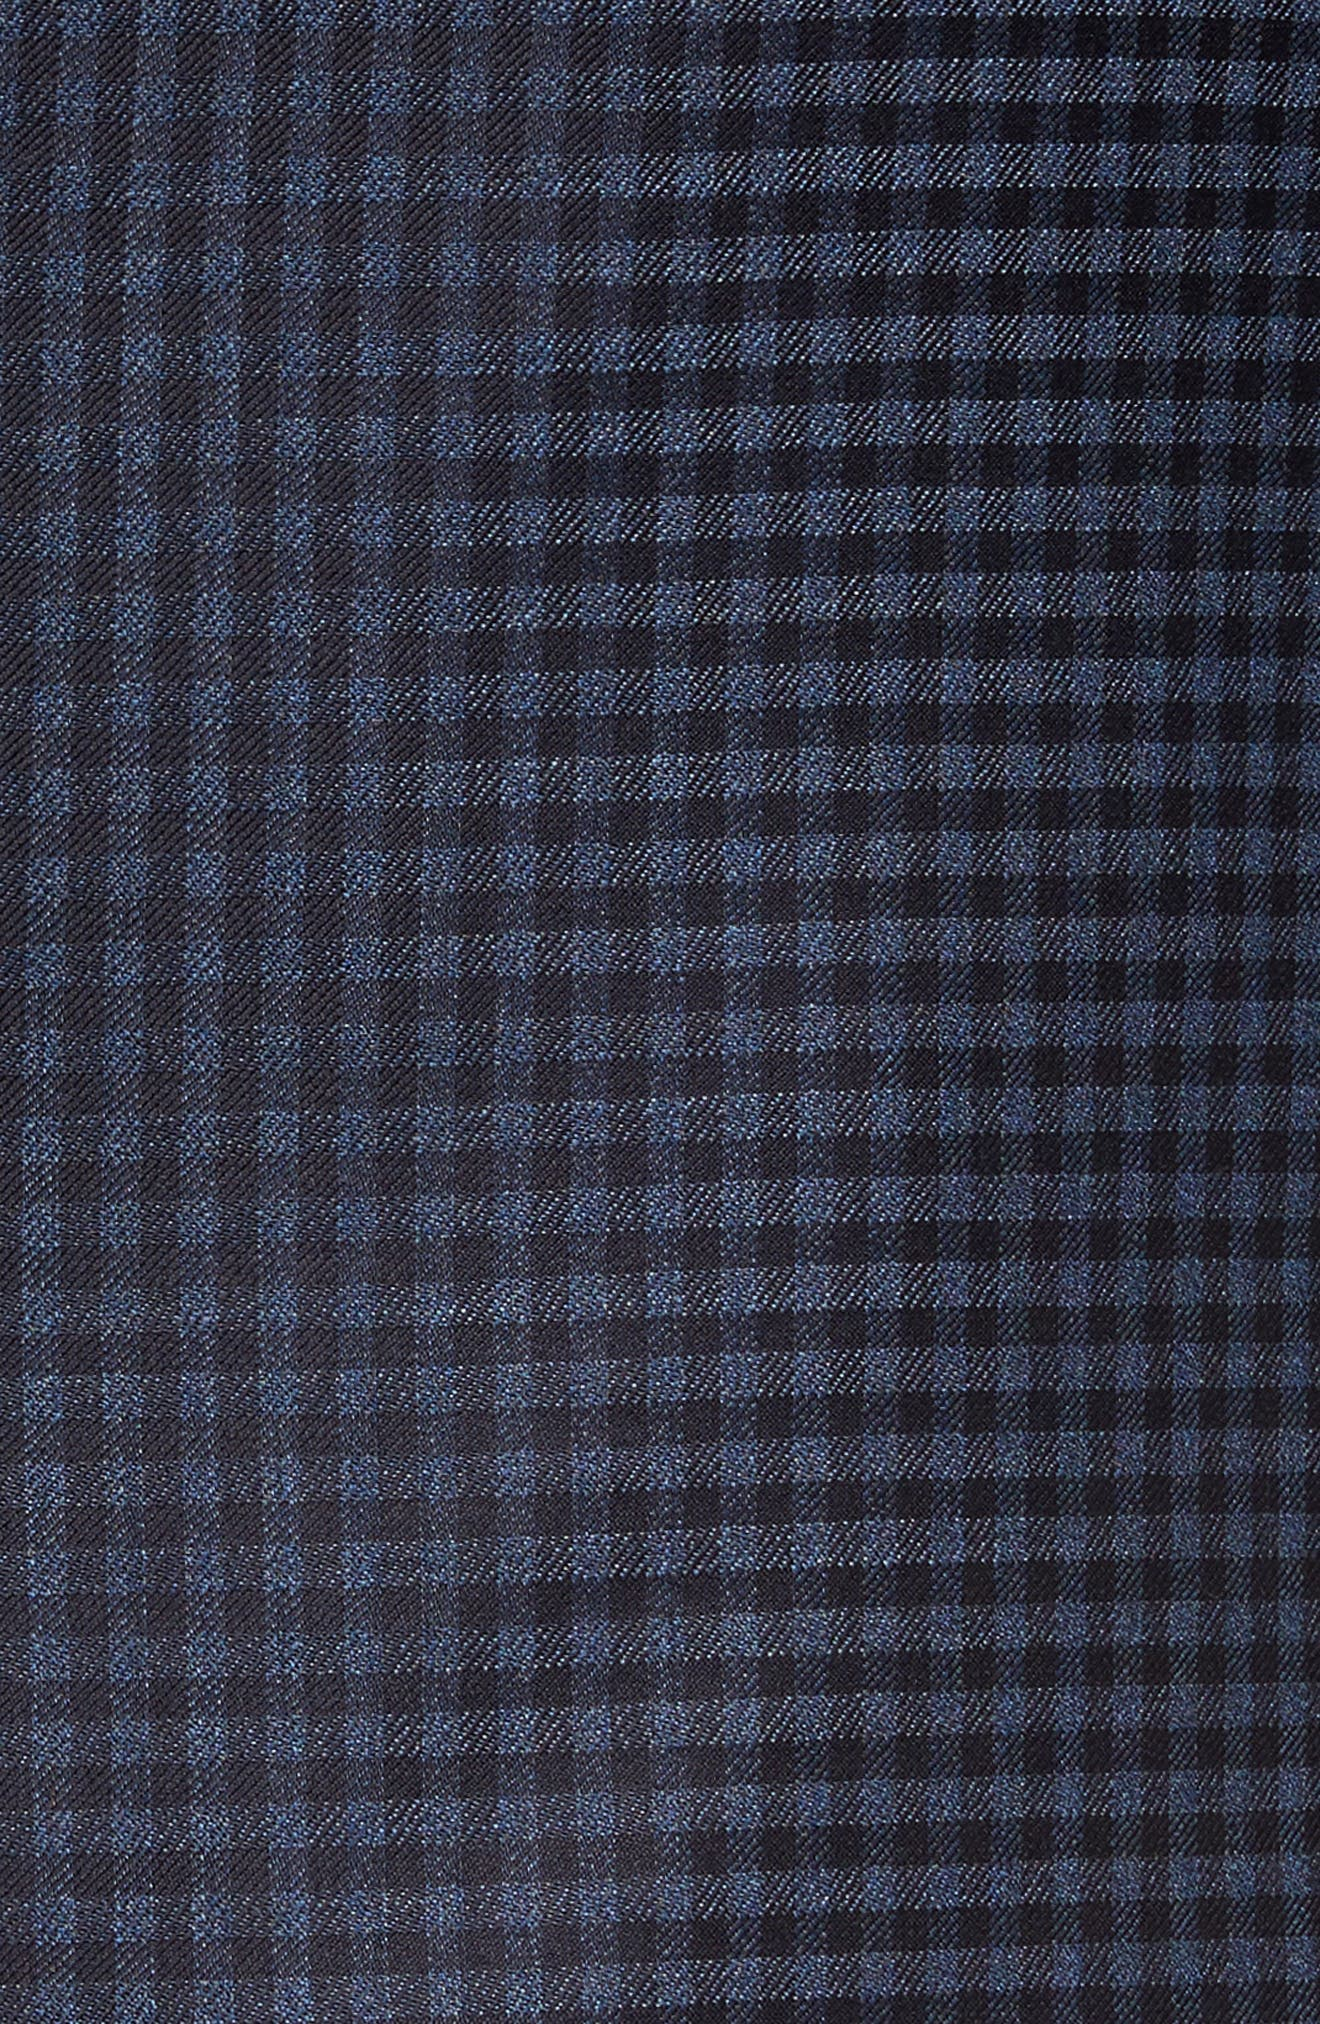 Classic Fit Check Wool Sport Coat,                             Alternate thumbnail 6, color,                             Navy